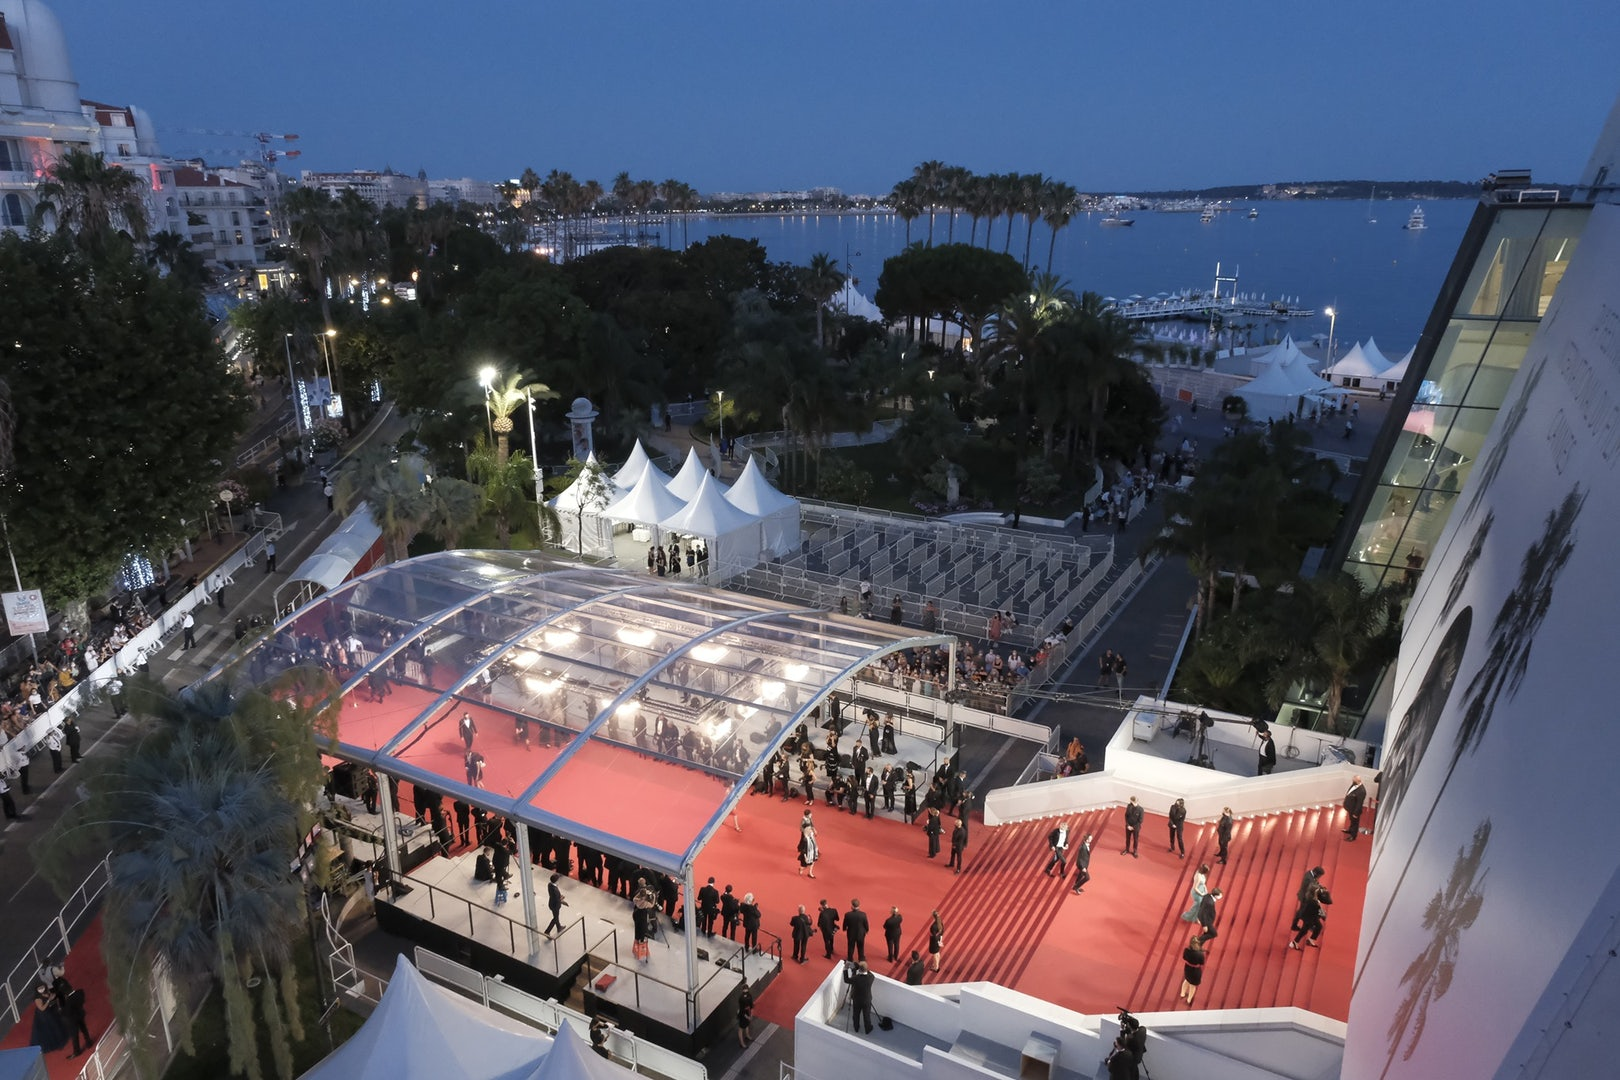 an aerial view of the red carpet at the Festival de Cannes